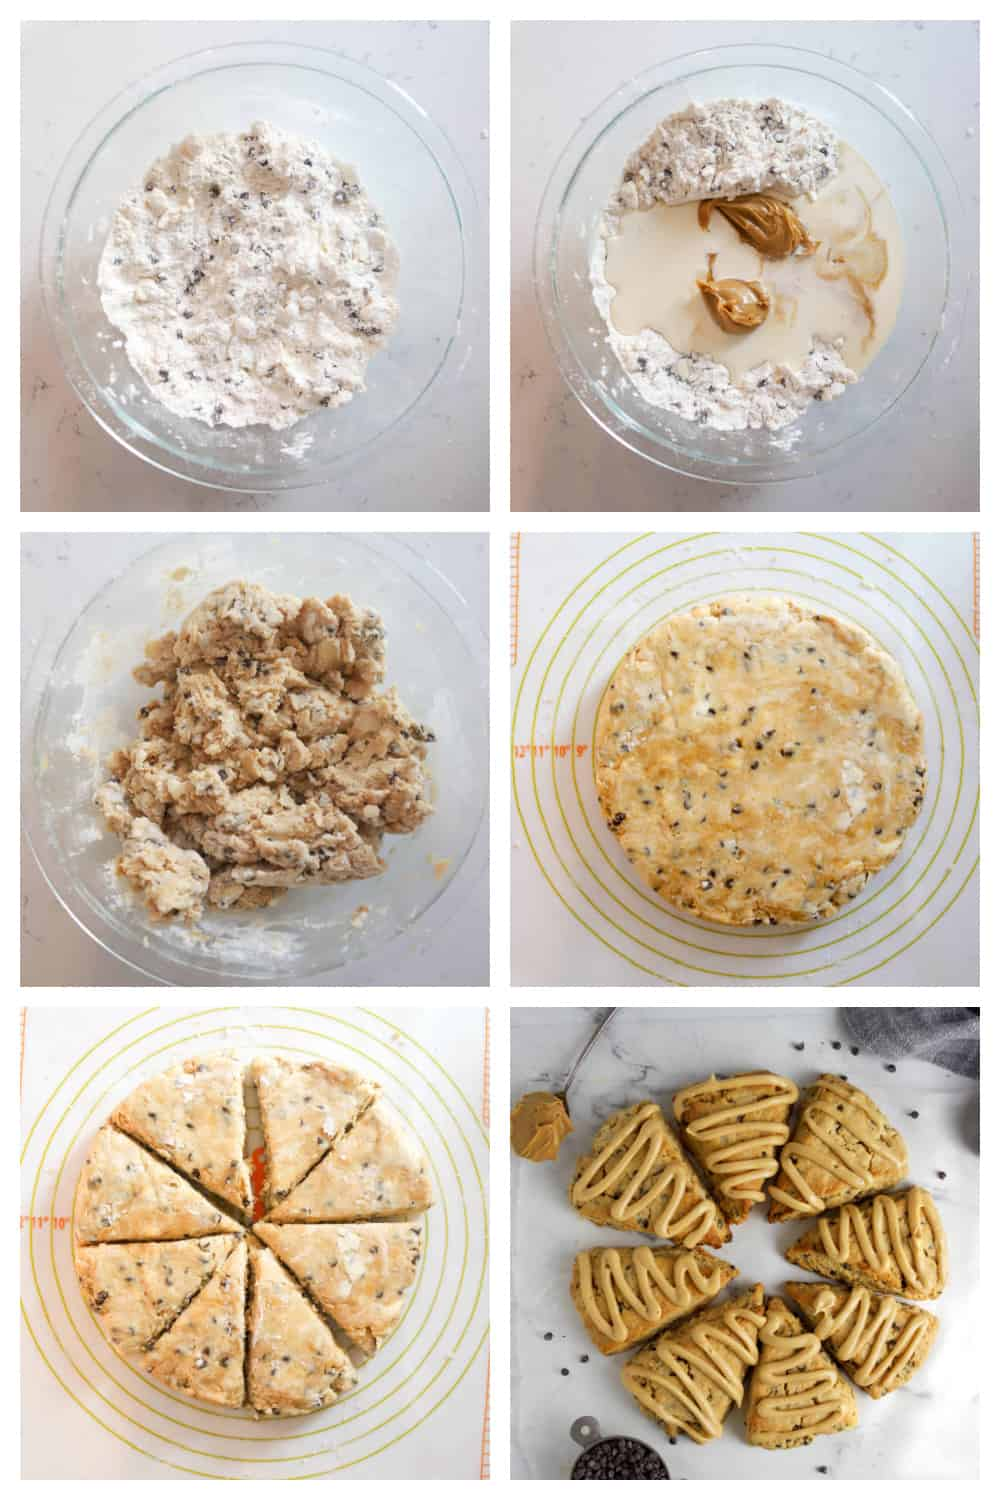 step by step photos of making the peanut butter scones